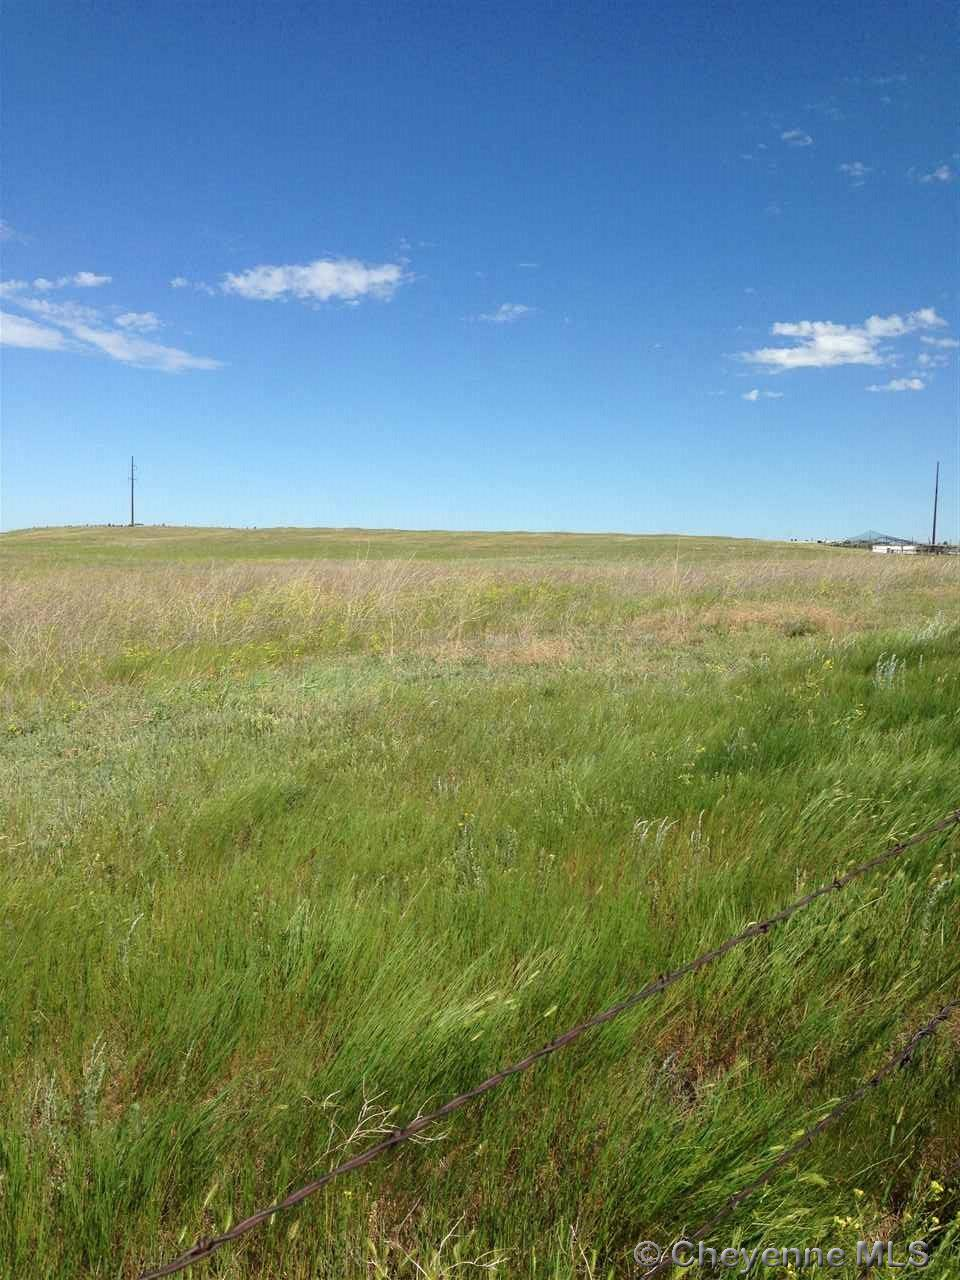 Land for Sale at Tr 7 Road 143 Tr 7 Road 143 Cheyenne, Wyoming 82009 United States